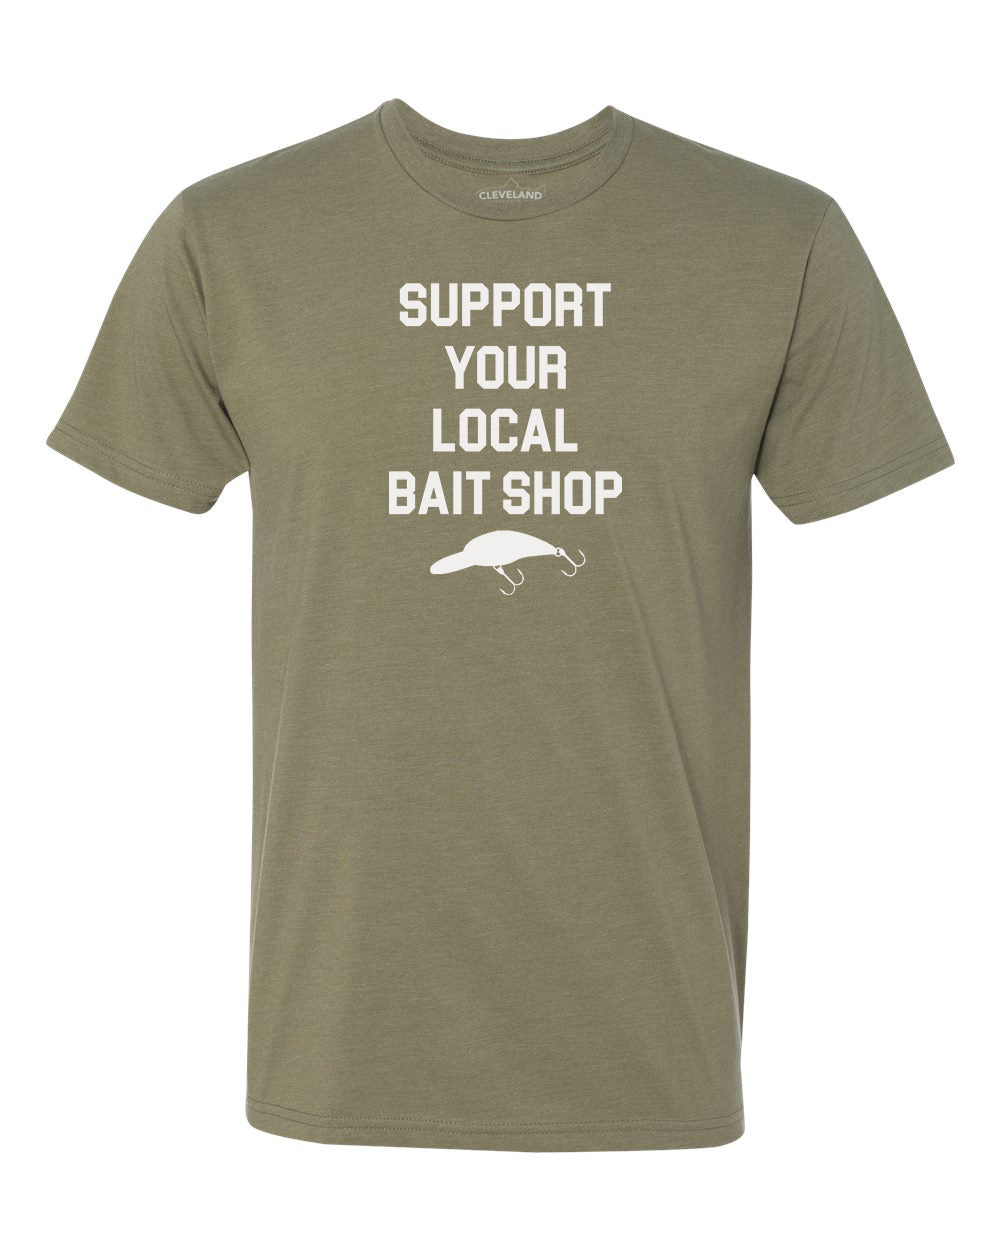 Support Your Local Bait Shop Tee